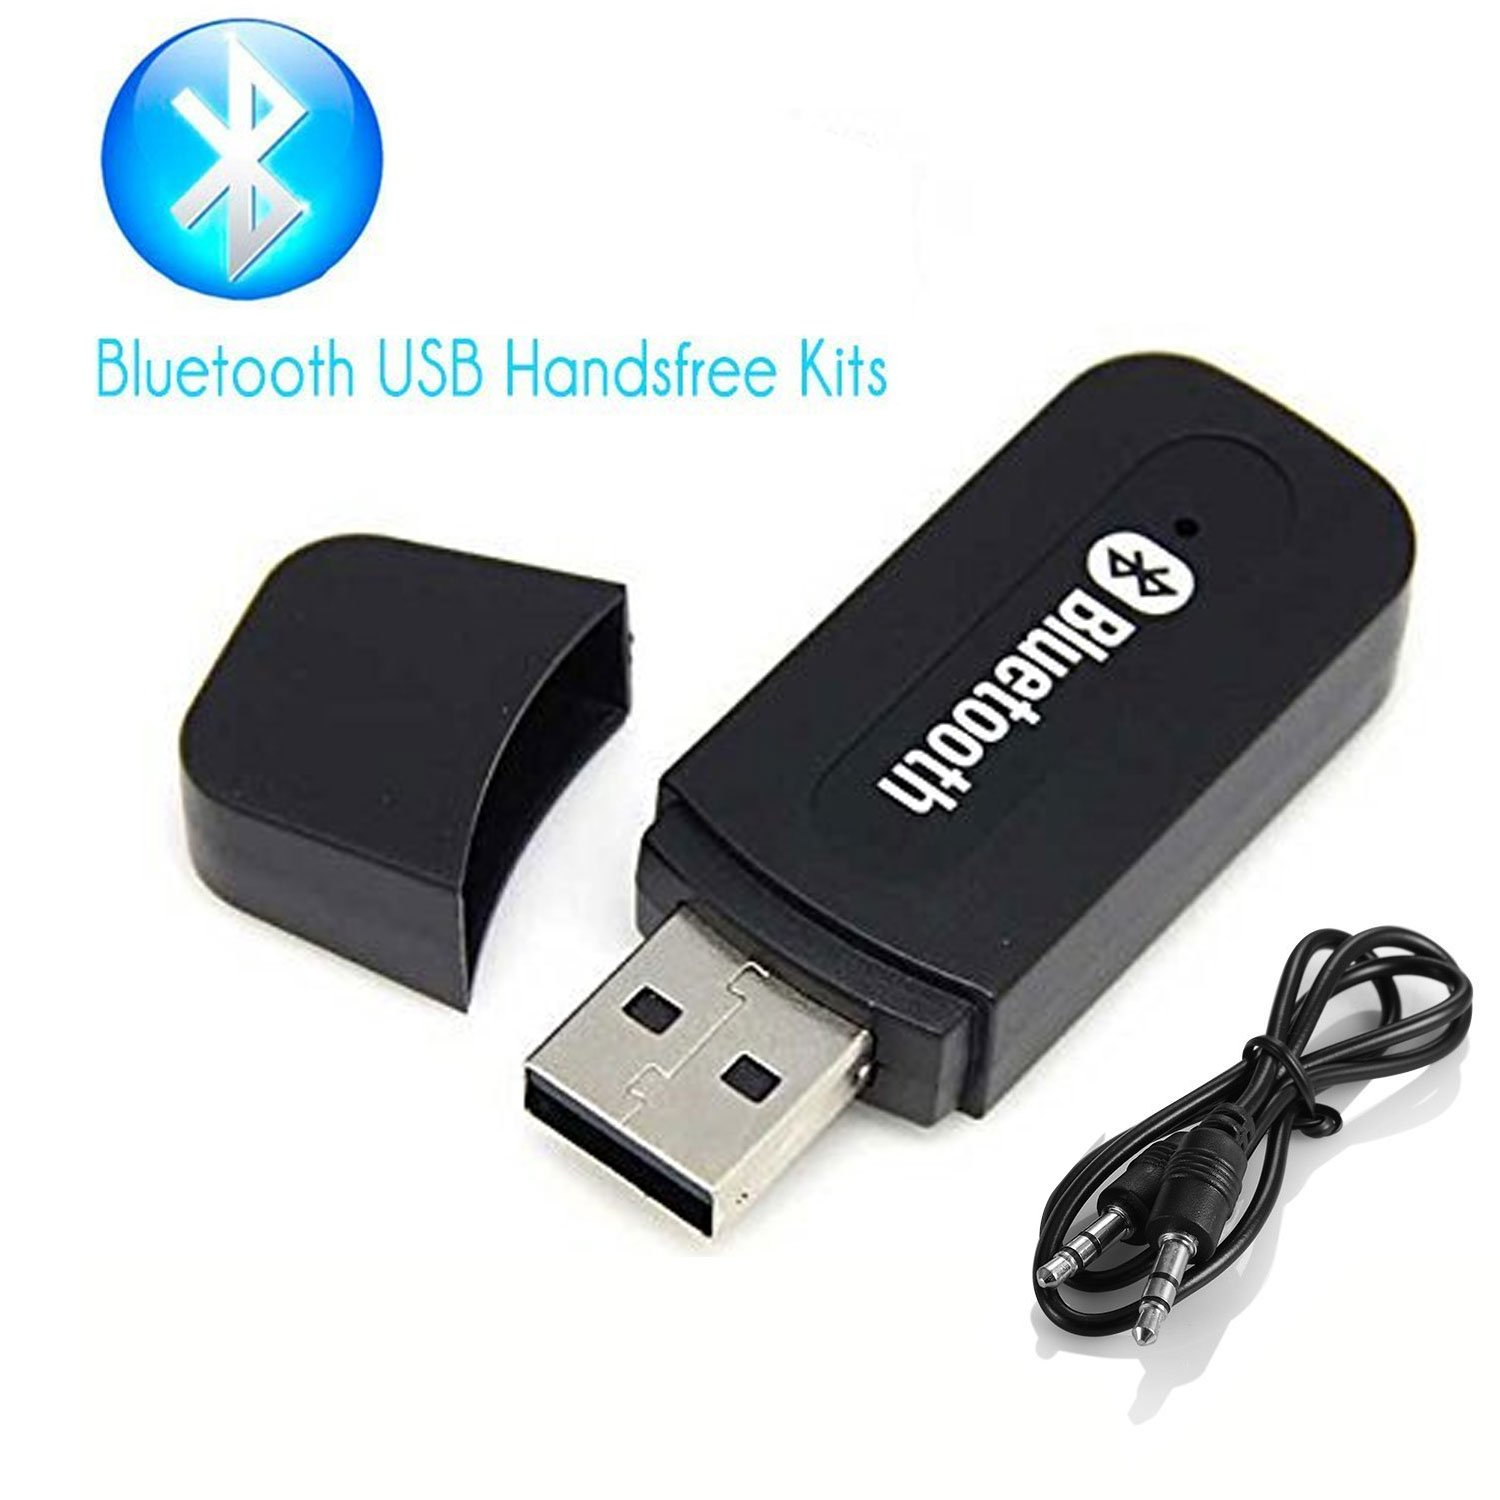 Bluetooth Adapter Receiver, Annbully Car Kit Mini USB Wireless Audio Adapter Bluetooth Music Receiver & Adapter Home /Car Phone iPhone Stereo Speakers Headphones Car (AUX In) Music Sound System